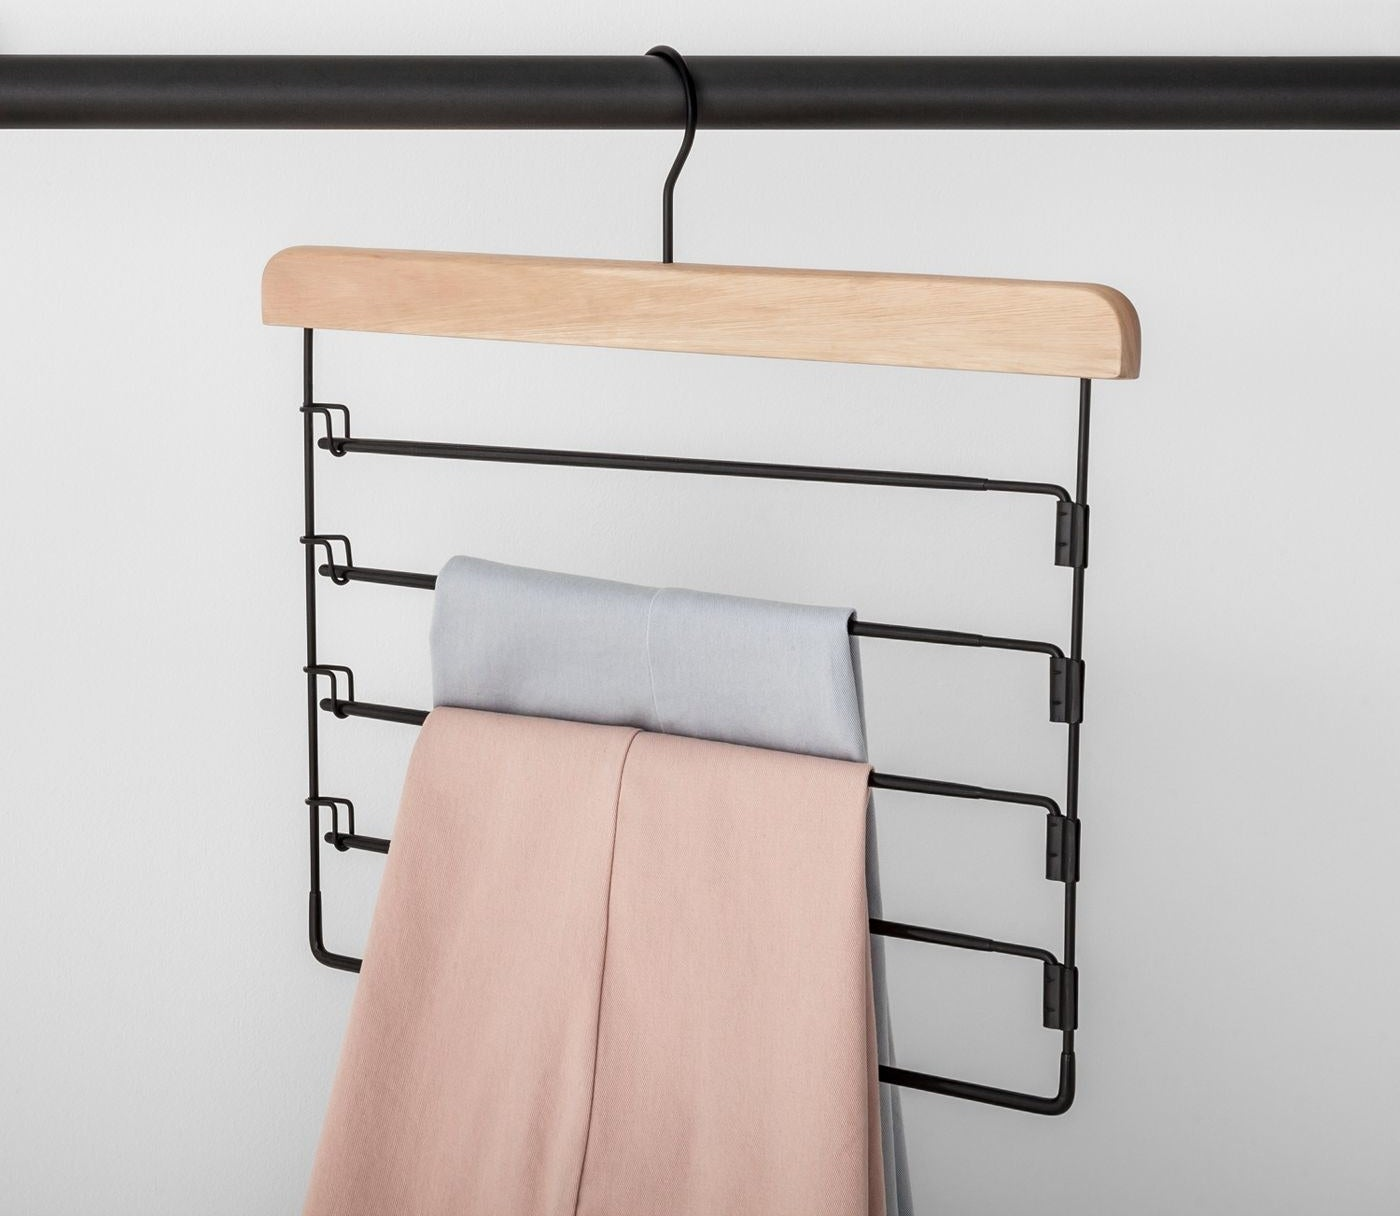 Wooden hanger with five metal areas for hanging pants